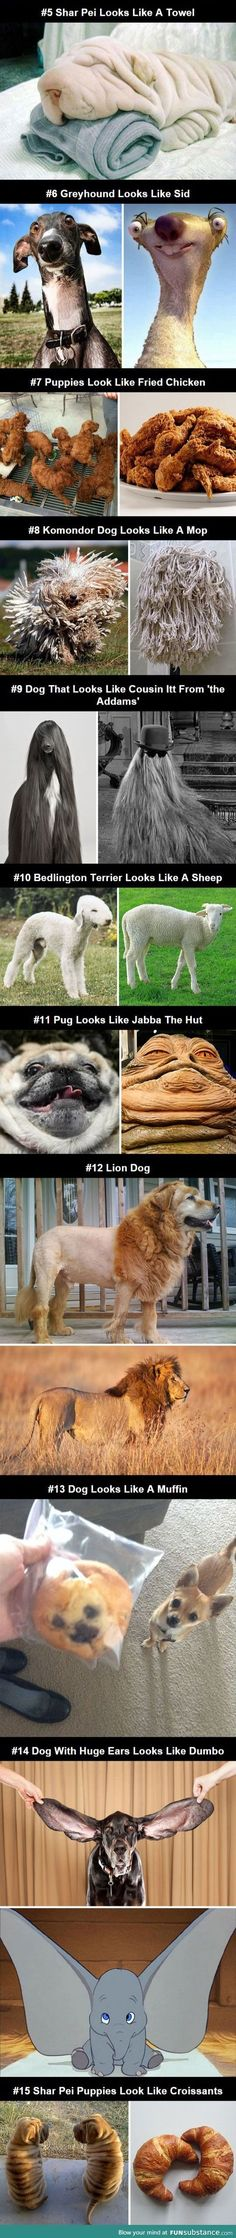 Cats & Dogs Images: Dogs That Look Like Other Things cute animals dogs adorable dog puppy animal pets lol puppies humor funny pictures funny animals funny pets funny dogs Funny Animal Quotes, Animal Jokes, Funny Animal Pictures, Cute Funny Animals, Cute Baby Animals, Dog Pictures, Funny Dogs, Funny Quotes, Humor Quotes